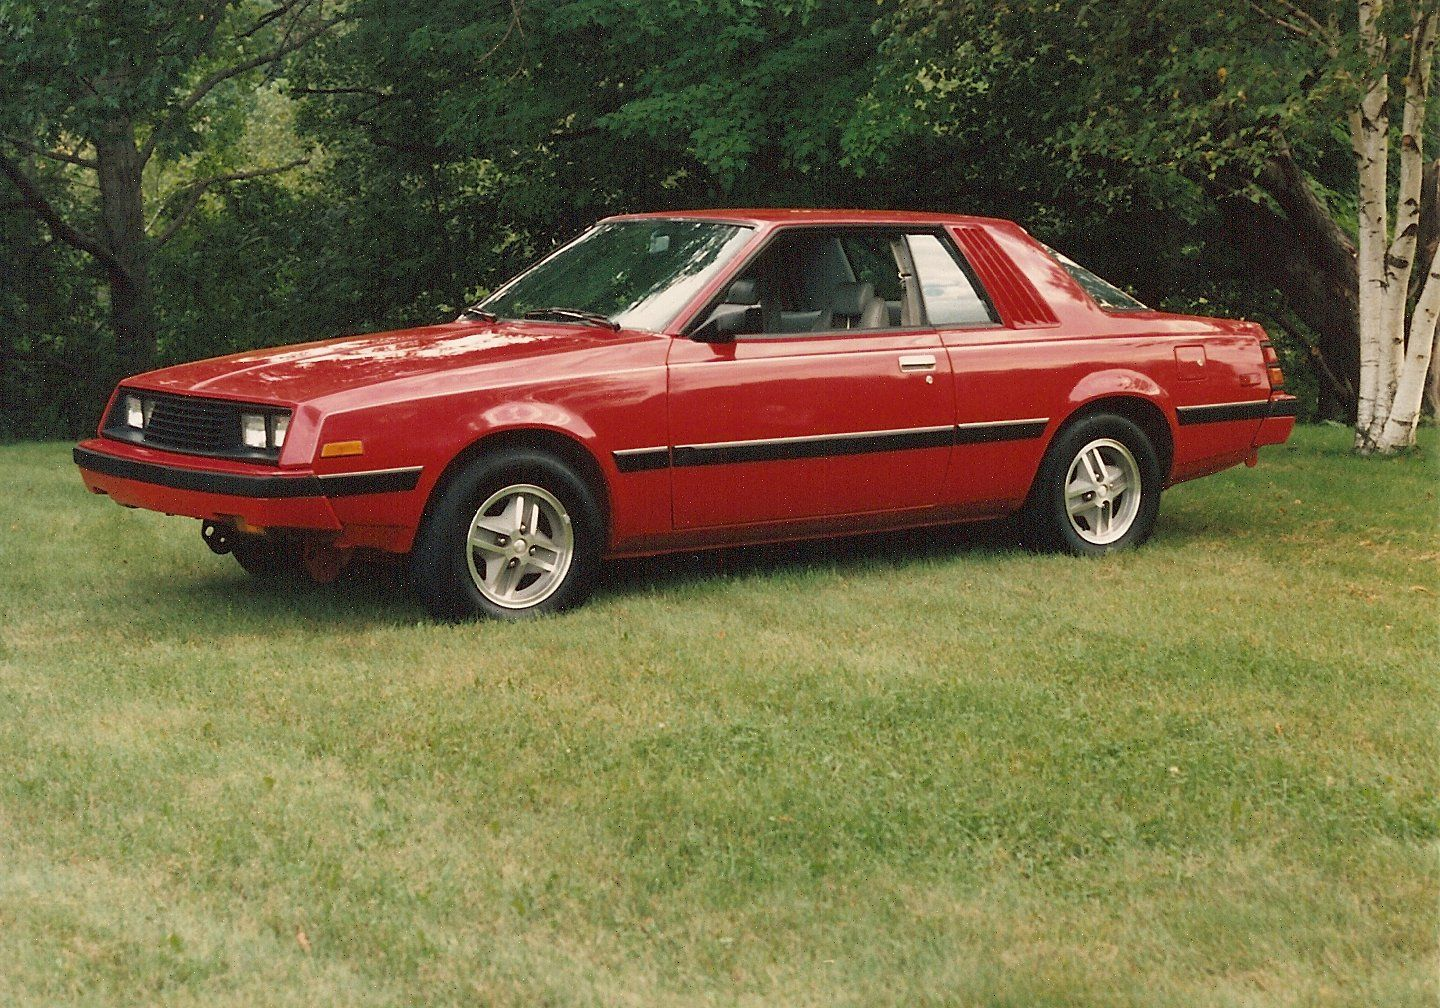 1983 Dodge Challenger Dodge Challenger Classic Cars My Ride